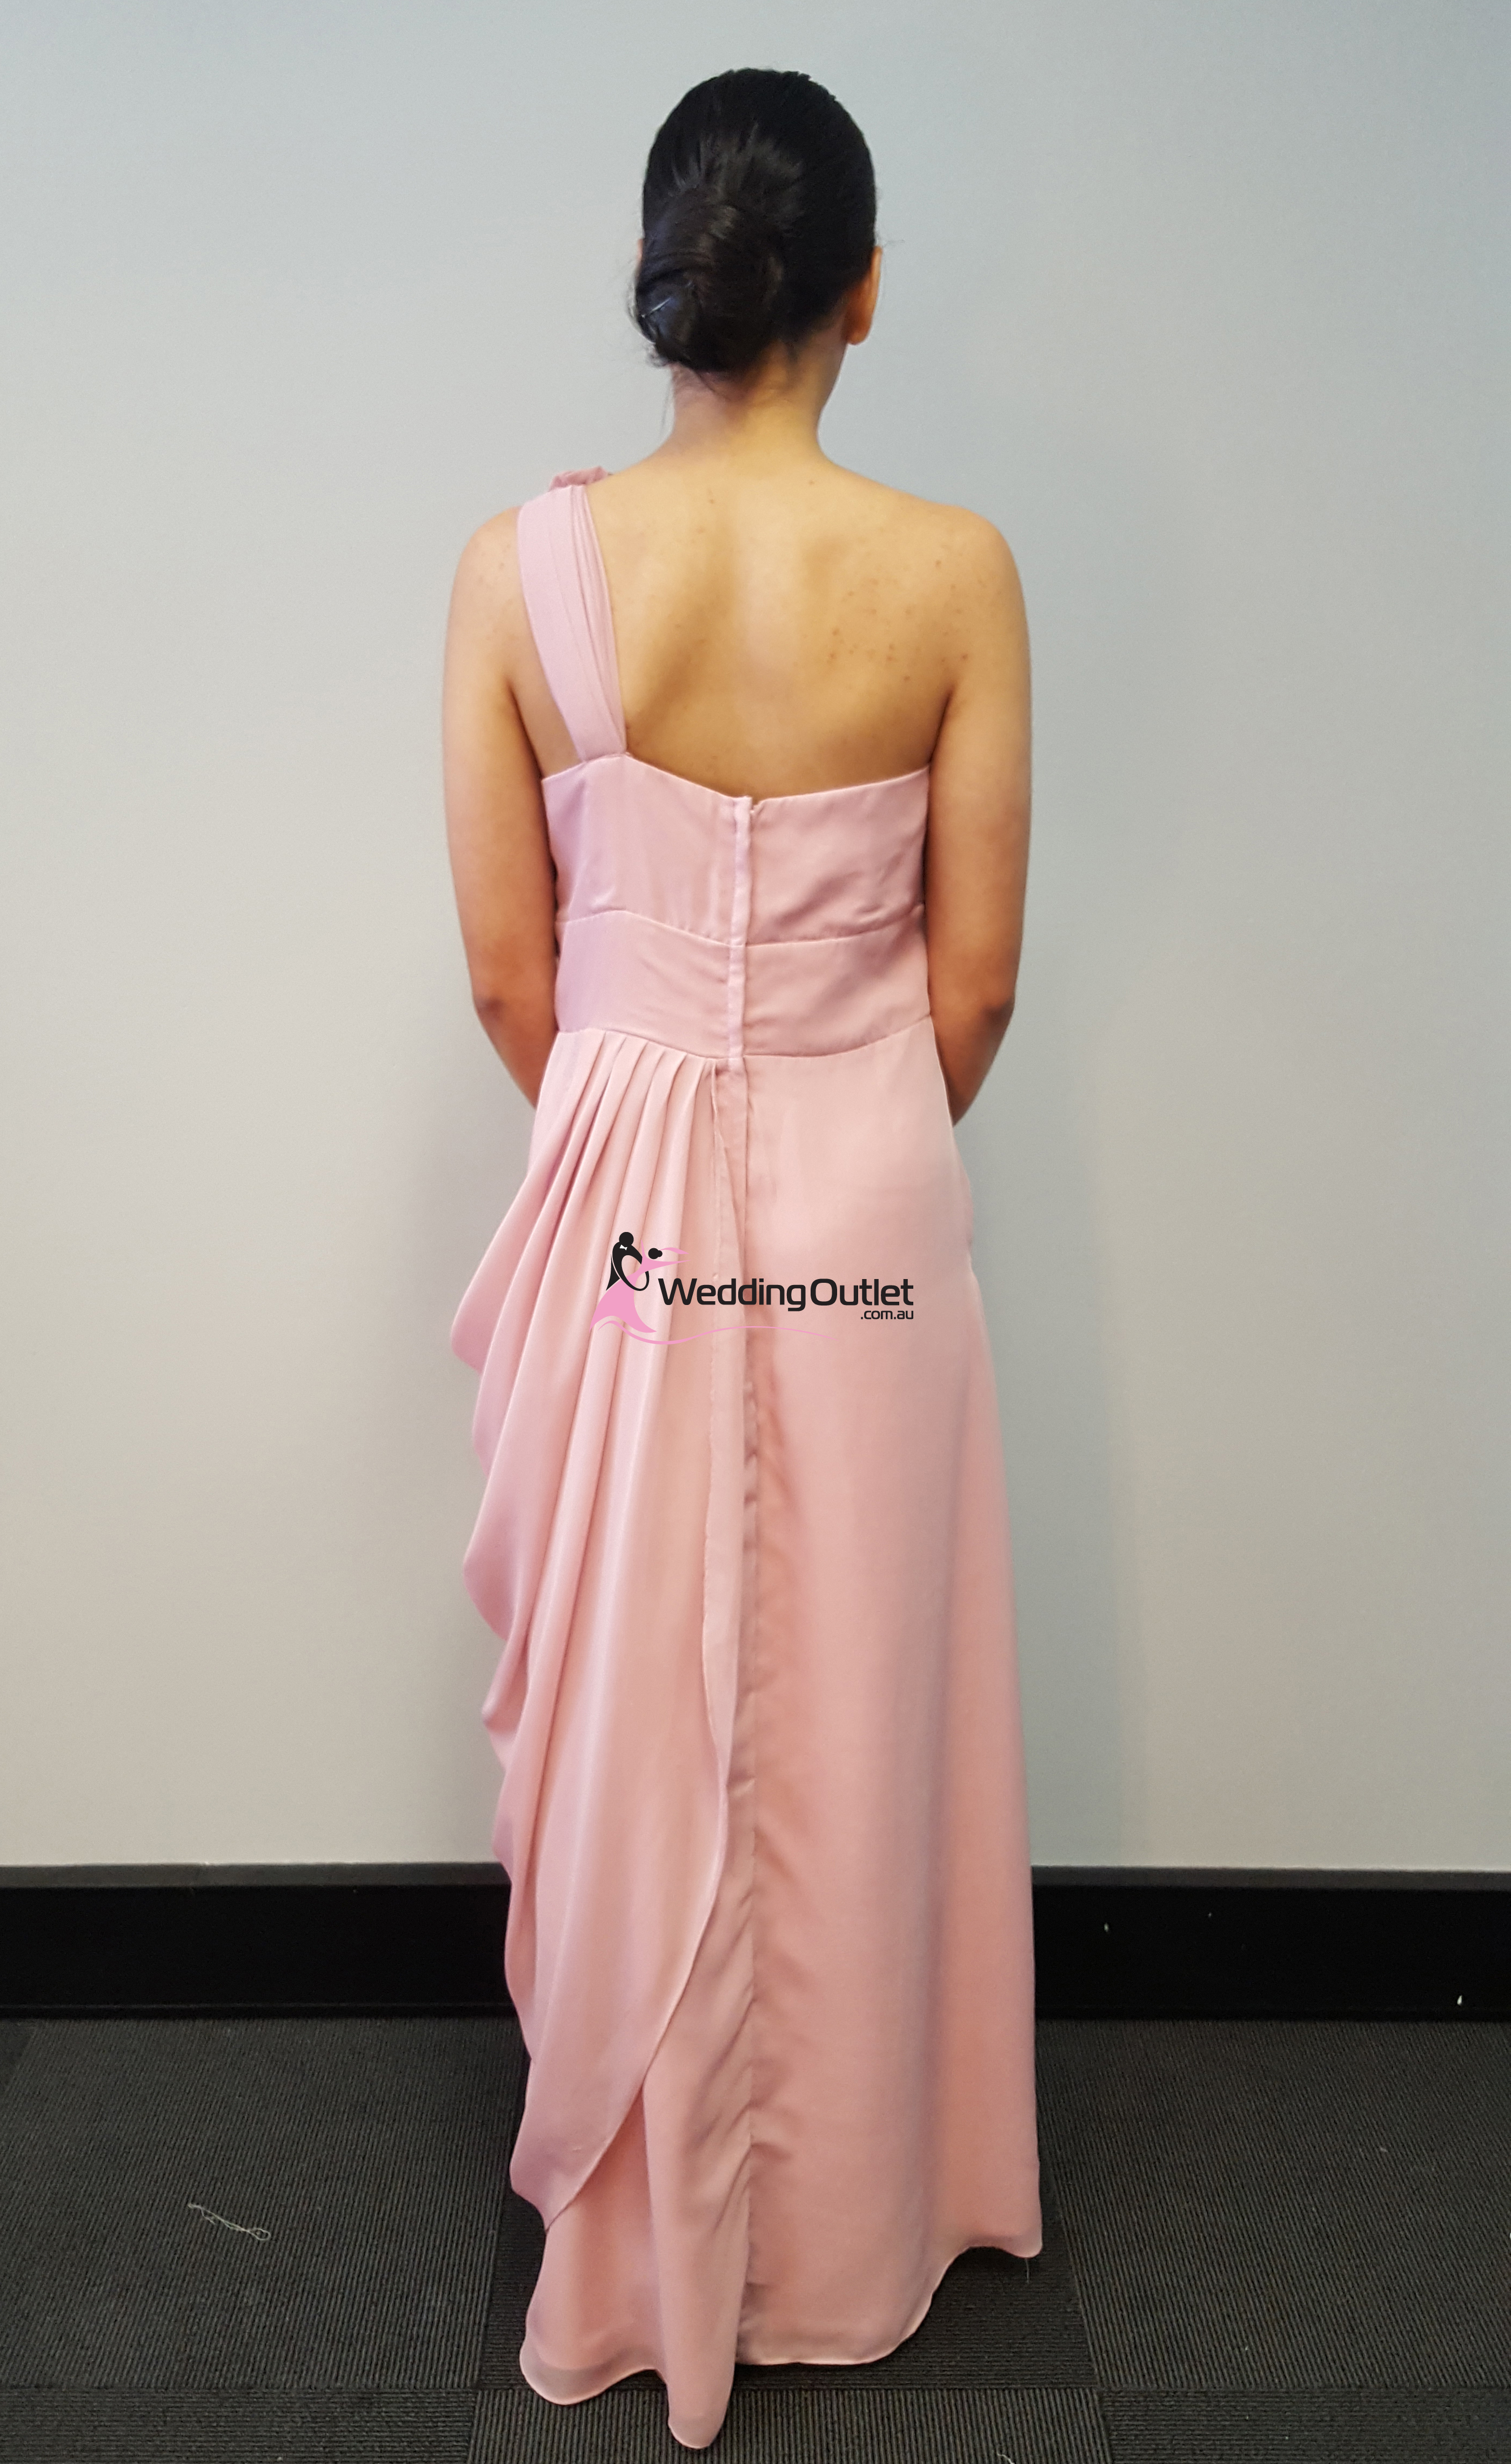 Tan One Sleeve Bridesmaid Dress Style #C101 - WeddingOutlet.com.au